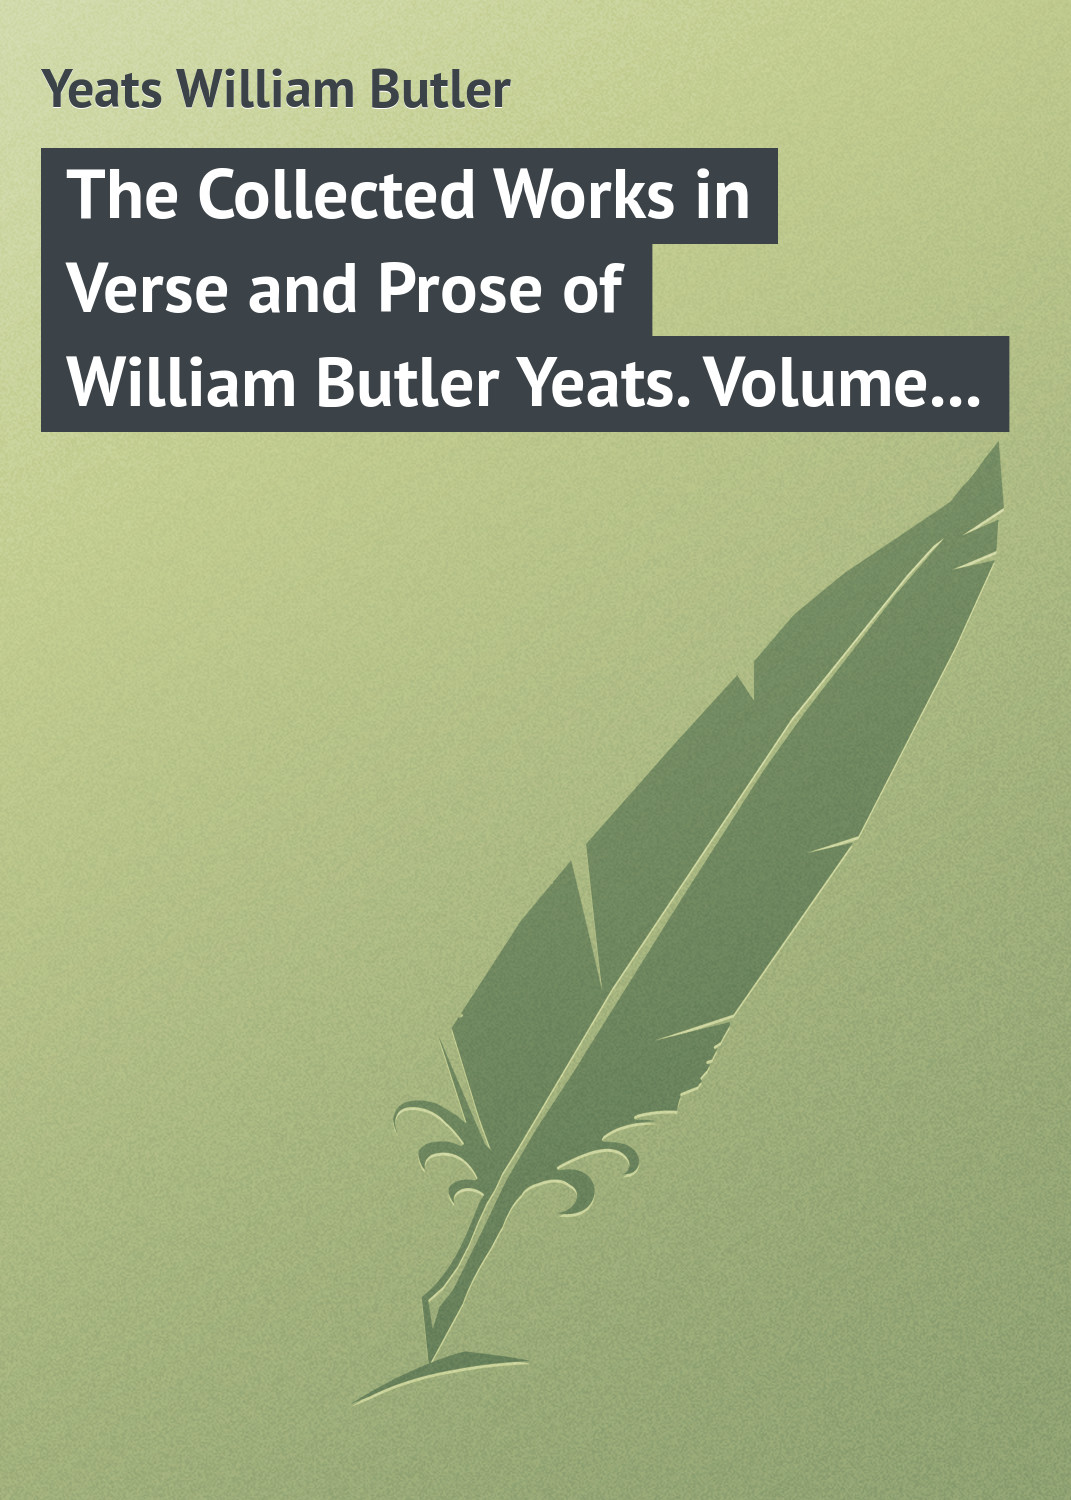 William Butler Yeats The Collected Works in Verse and Prose of William Butler Yeats. Volume 8 of 8. Discoveries. Edmund Spenser. Poetry and Tradition; and Other Essays. Bibliography игрушка коллекционная tokidoki плюшевая bocconcino plush 844970088671